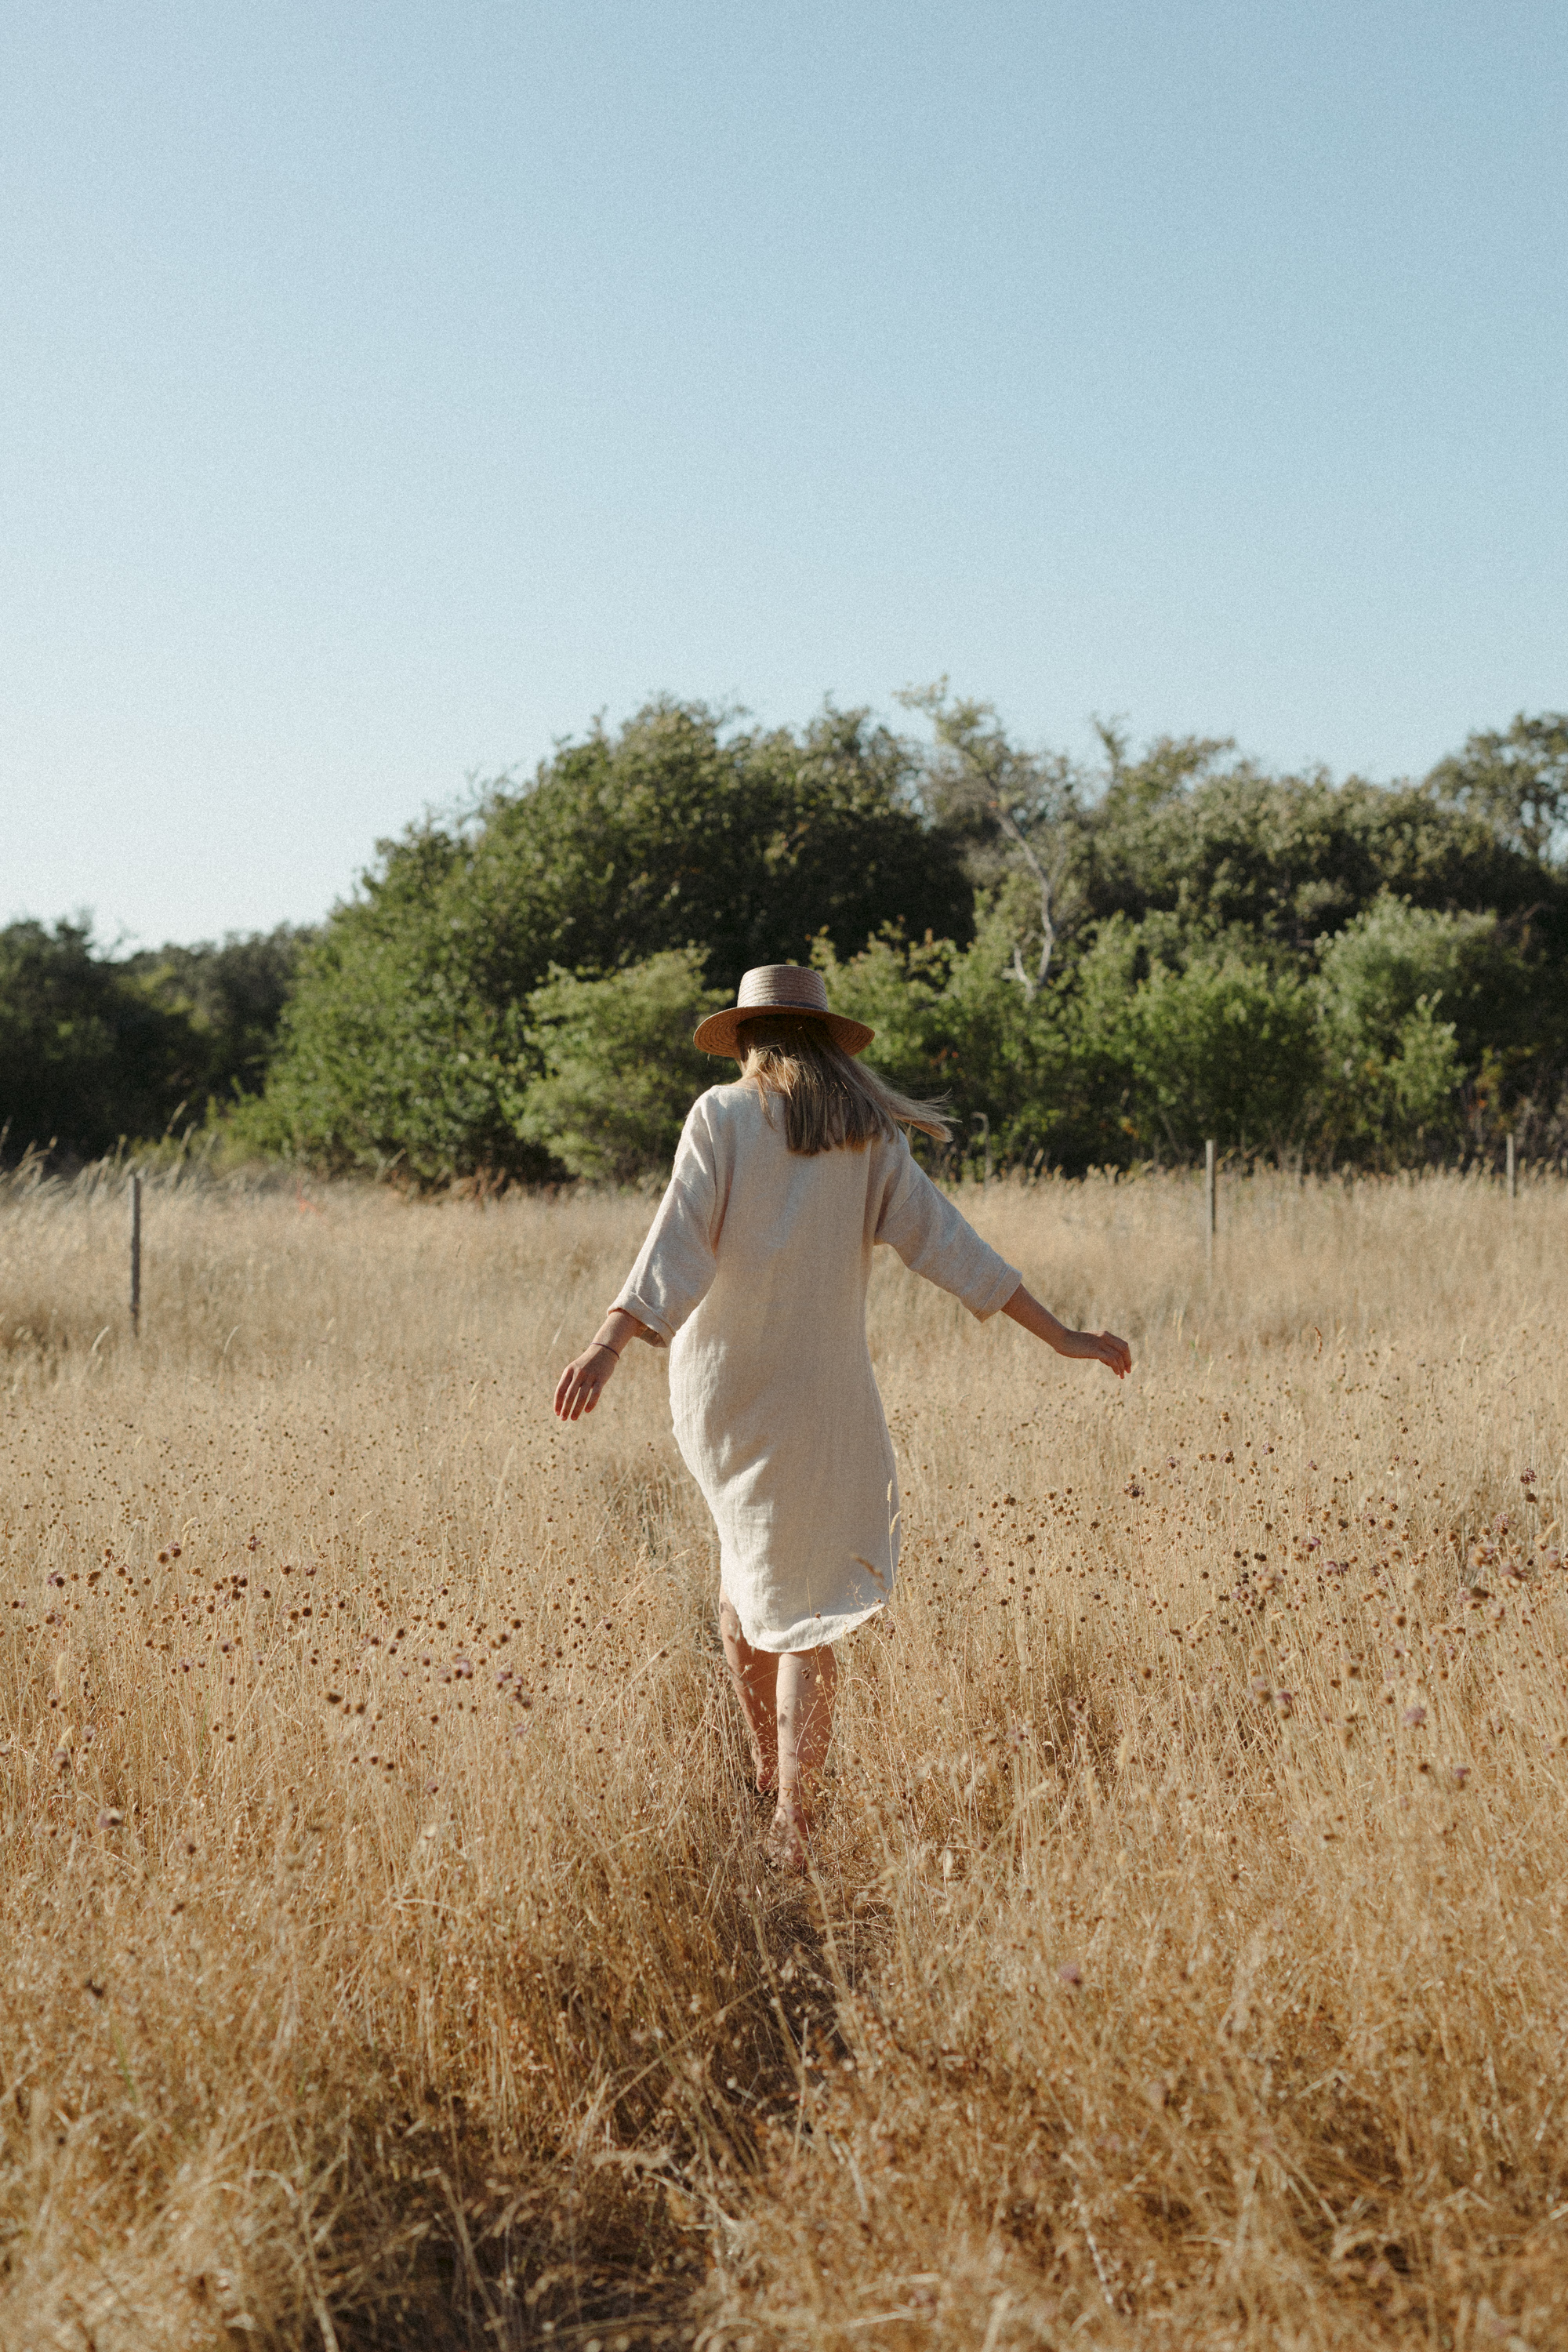 girl running in a grass field, fashion photography, handwoven clothing woven wares victoria bc